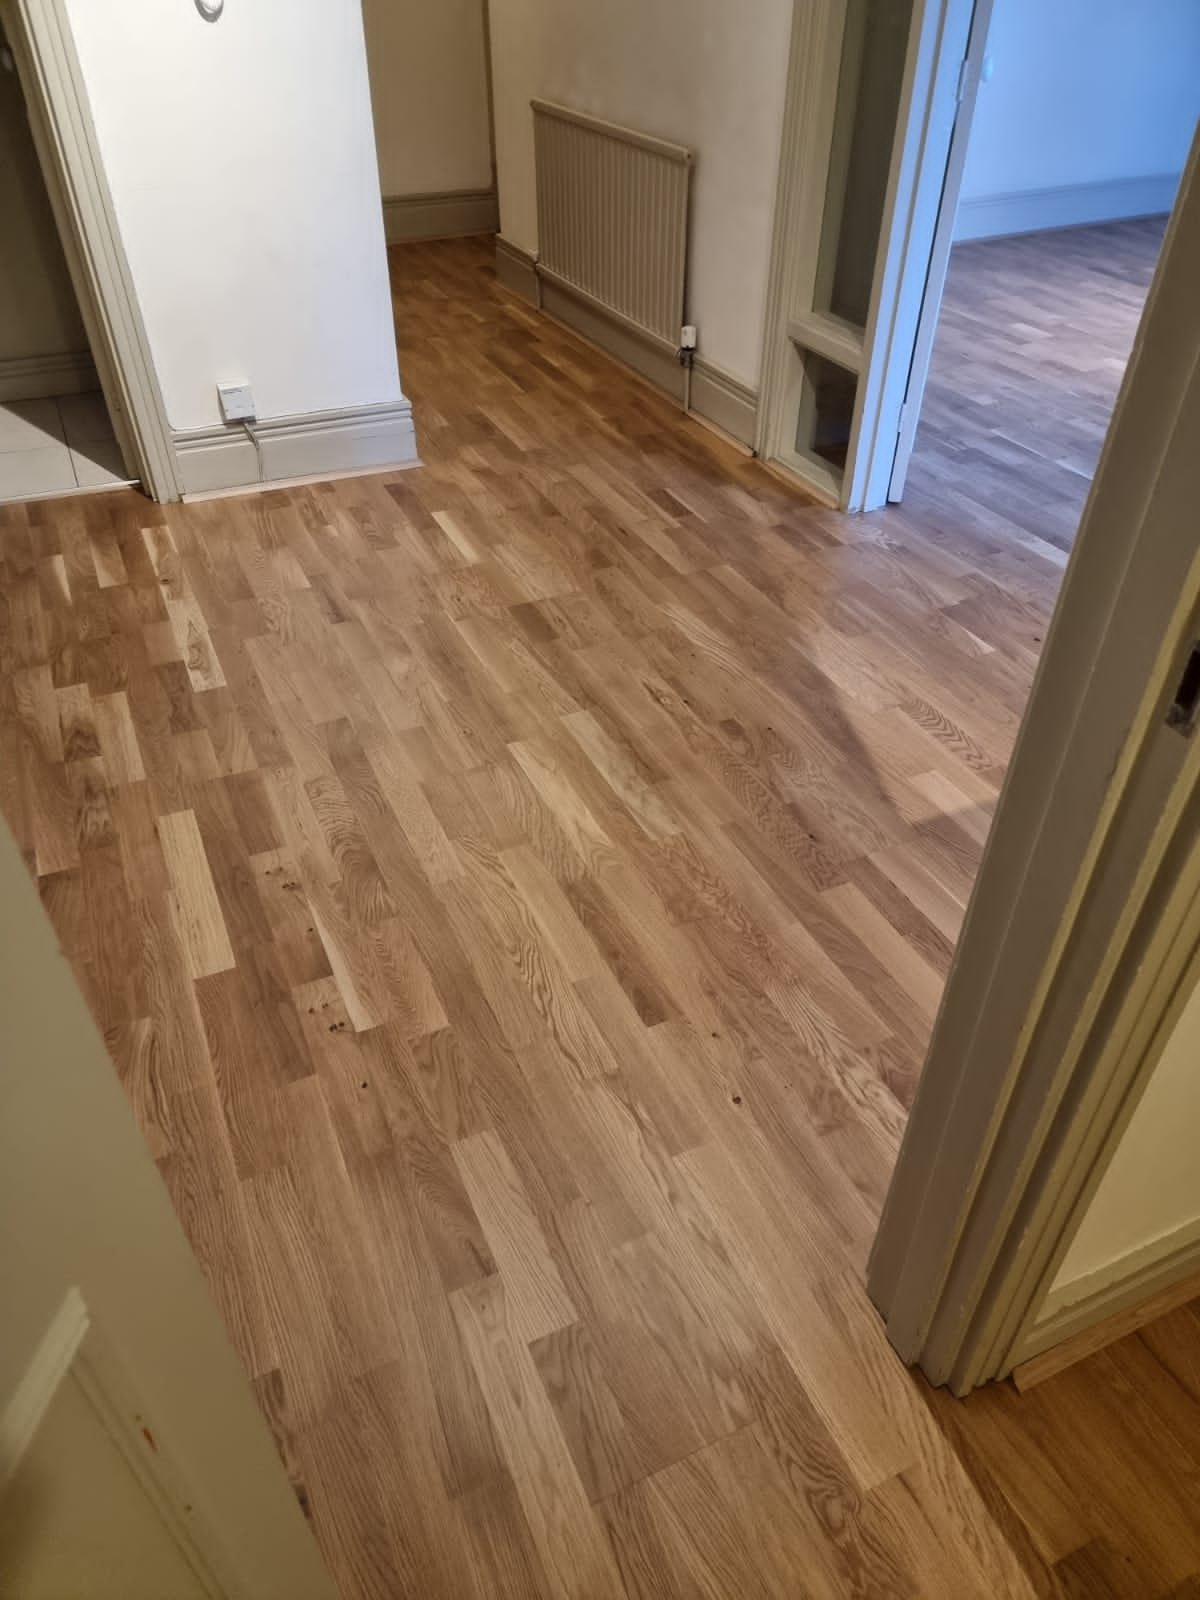 Holt Oak Wood Flooring Yardley in Lambeth 1